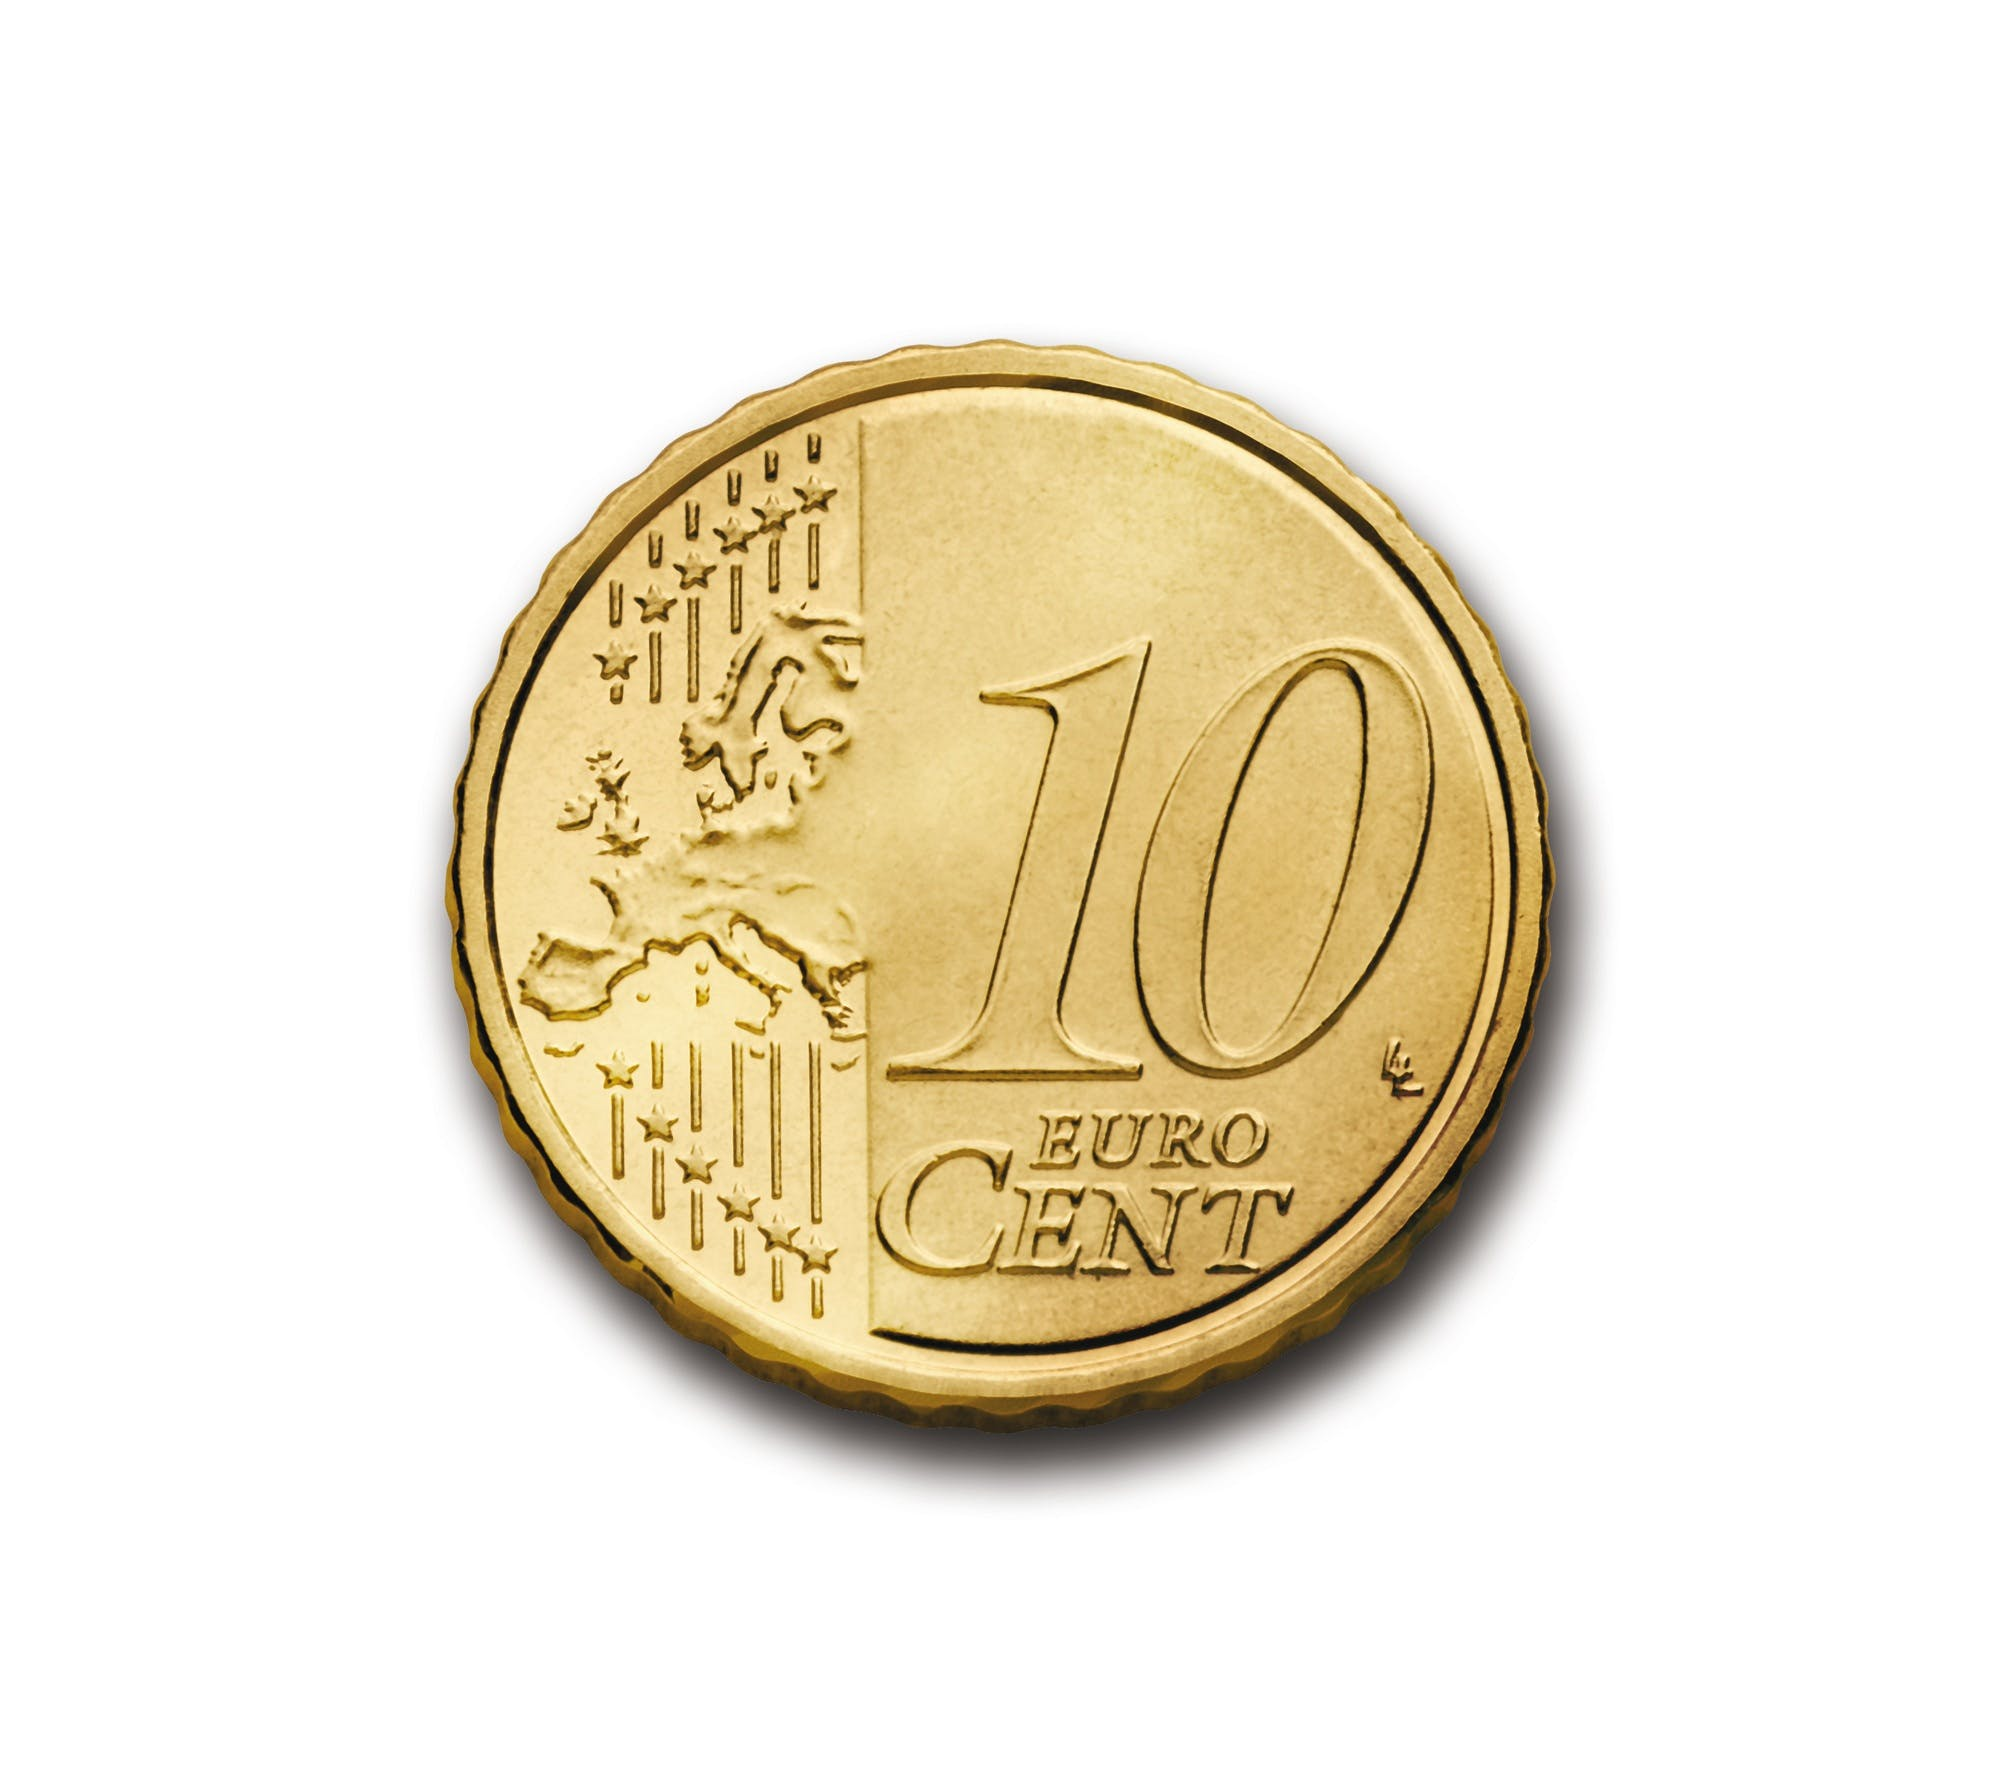 Round Gold-colored 10 Euro Cent Coin